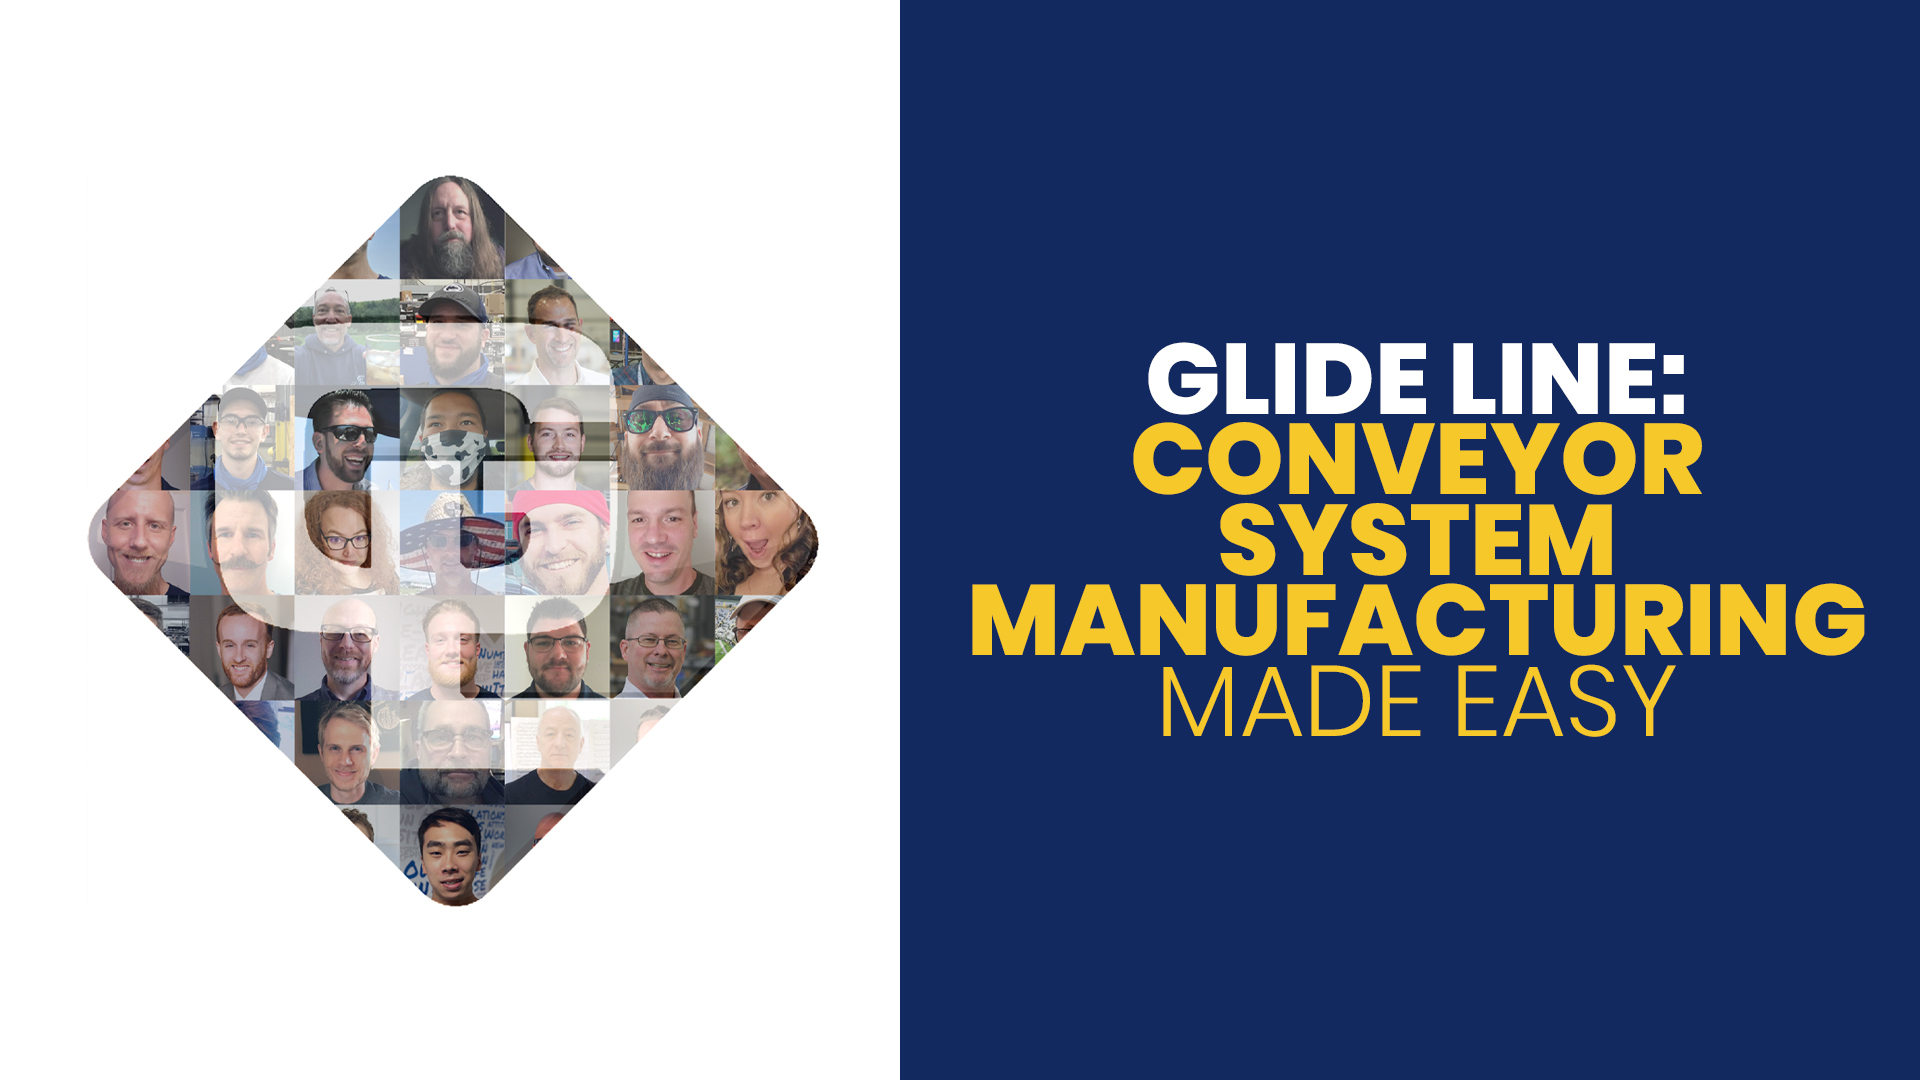 Glide Line, Conveyor System Manufacturing Made Easy